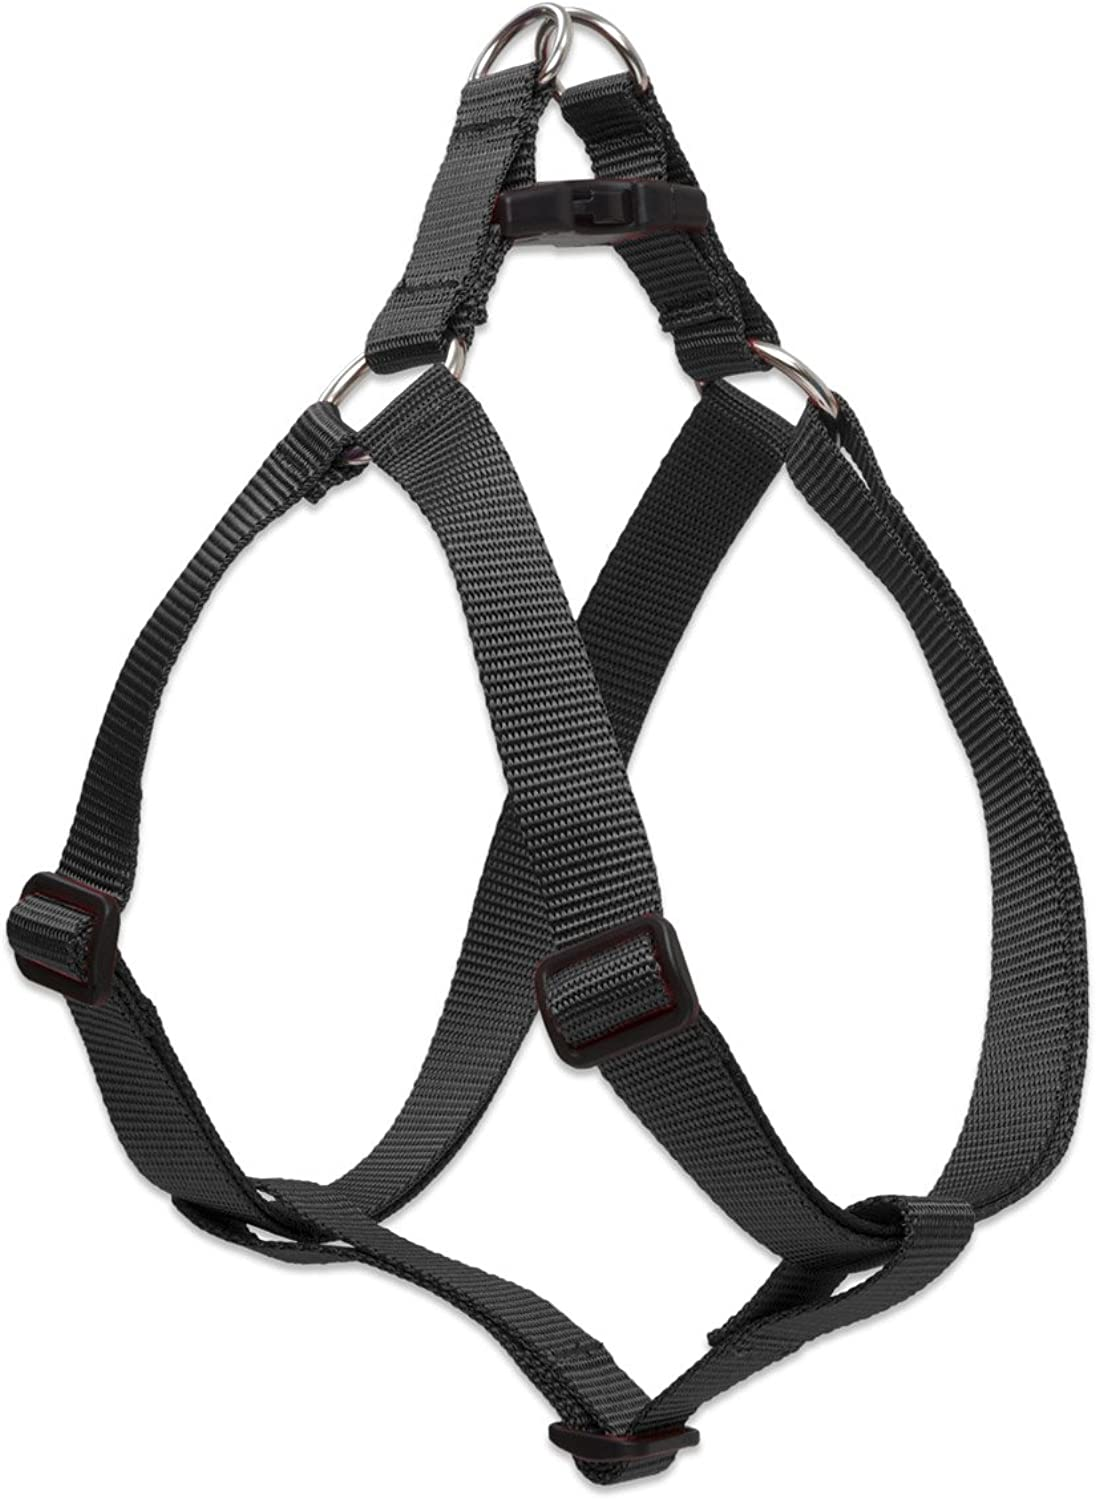 Lupine StepIn Harness for Larger Dogs, 19 to 28Inch Girth, 1Inch Wide, Black